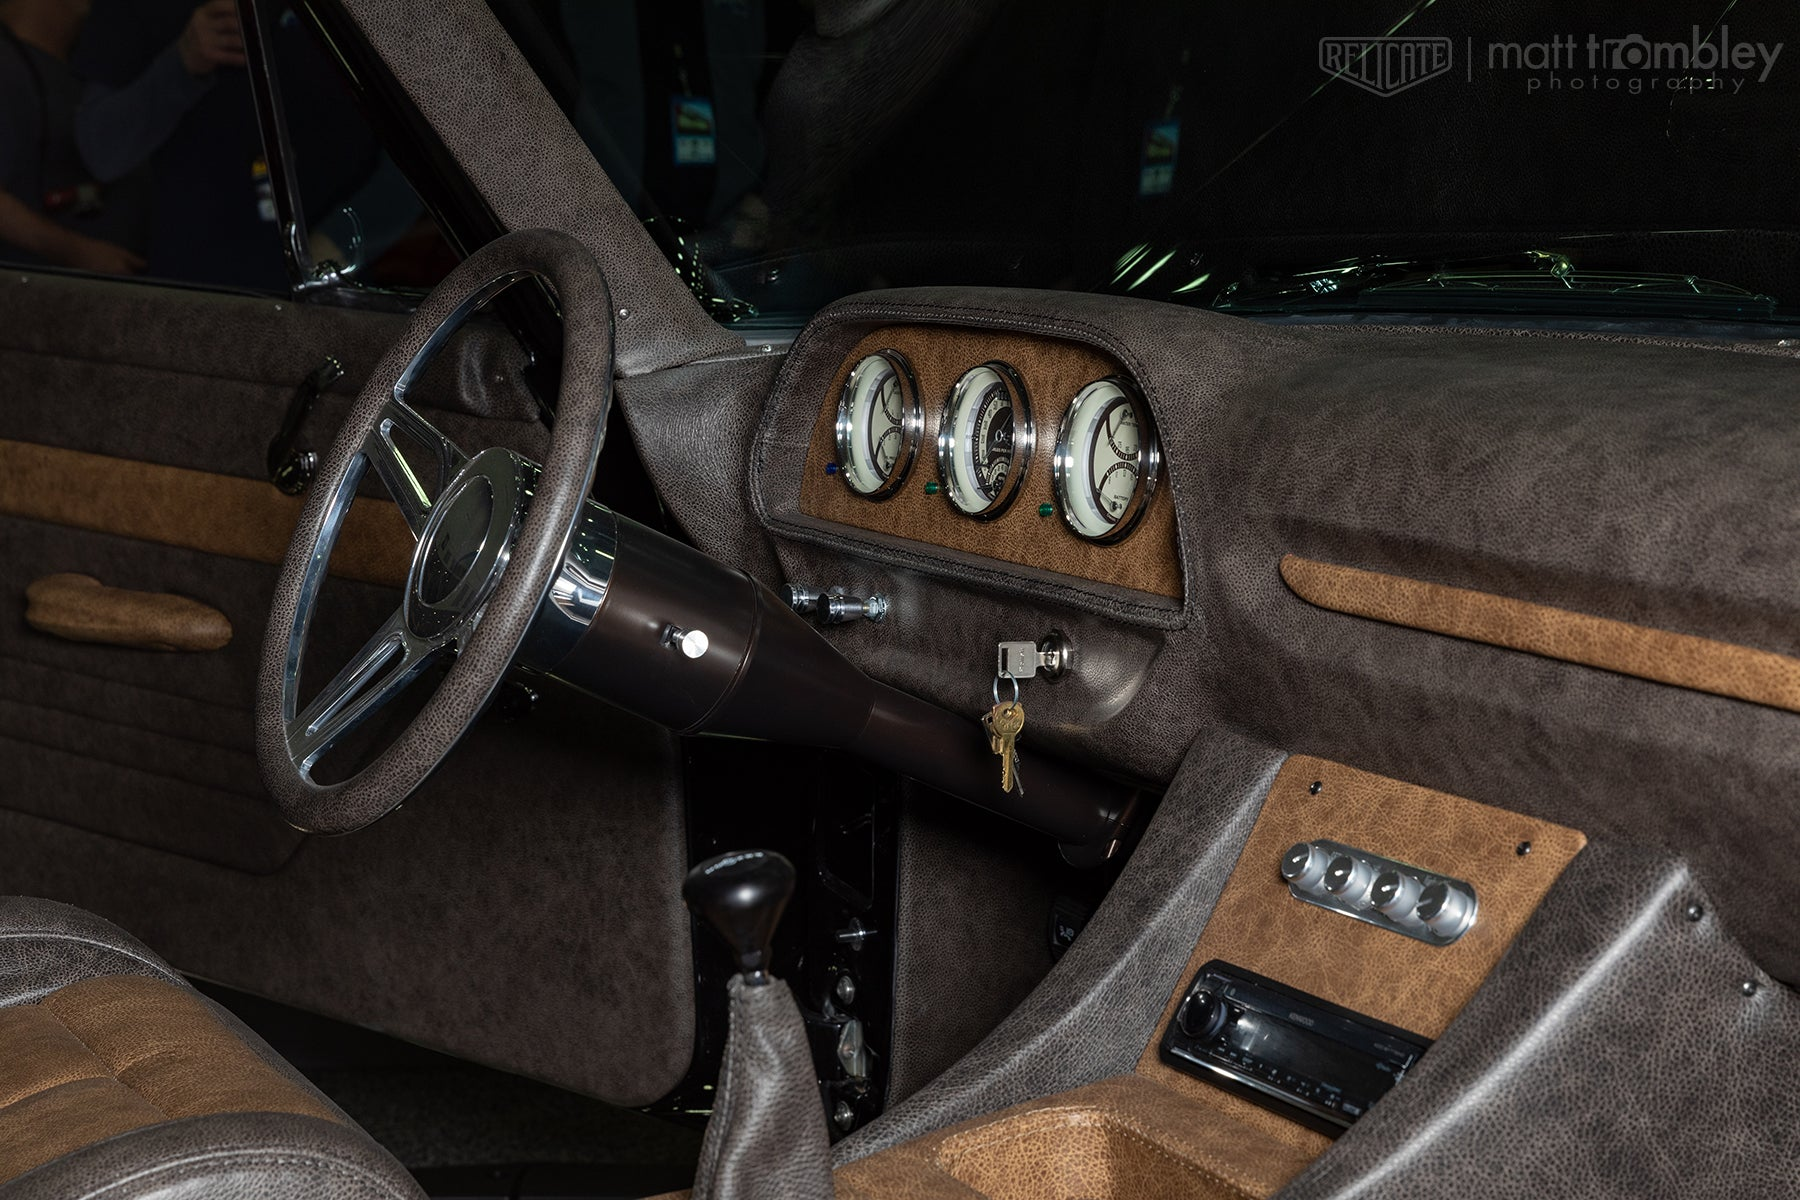 1960 Ford Country Squire Leather Interior Dash Steering Wheel Gauges